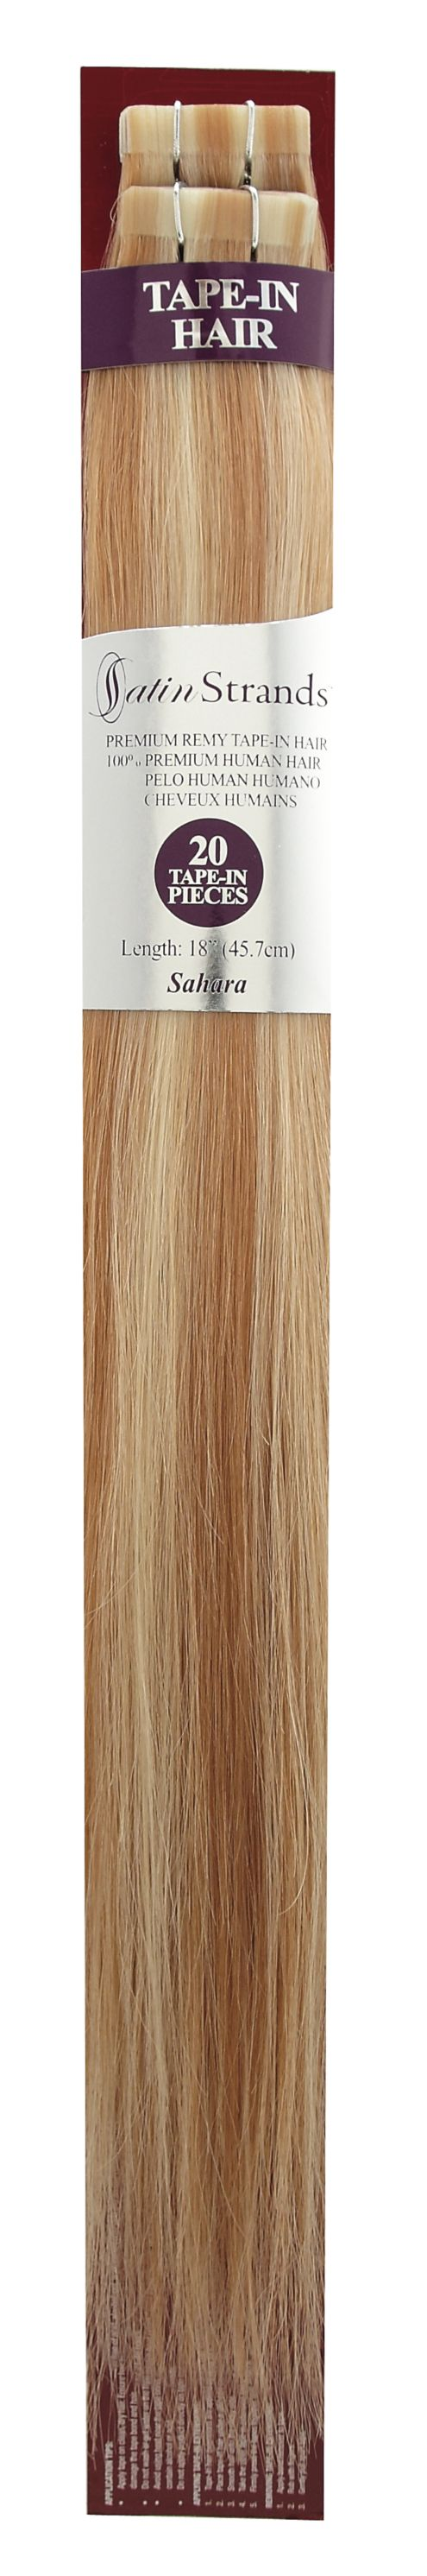 Satin Strand Hair Extensions 18